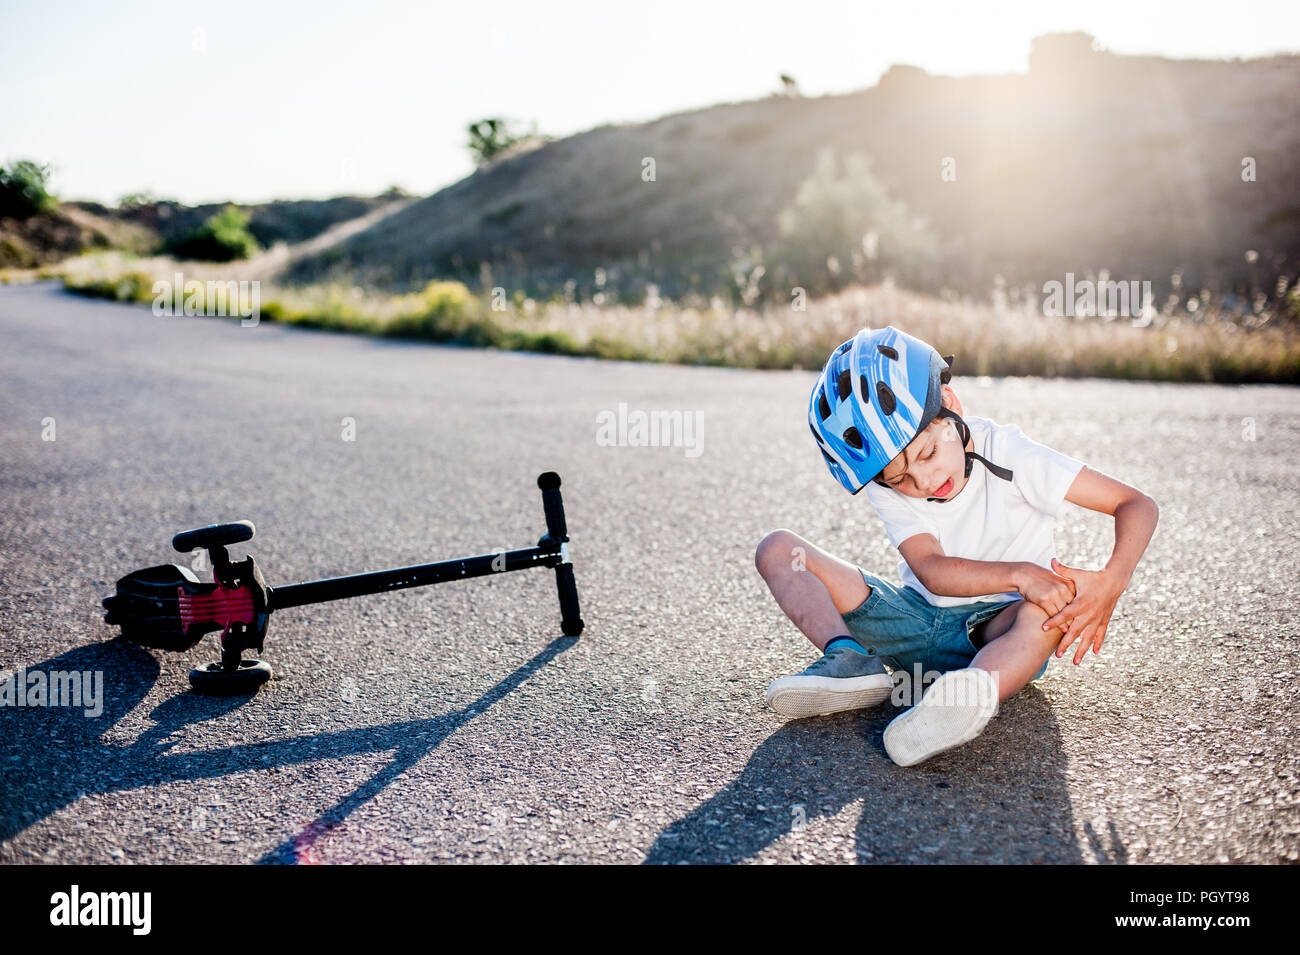 little sport kid holding his knee suffering from pain after road accident scooter - Stock Image